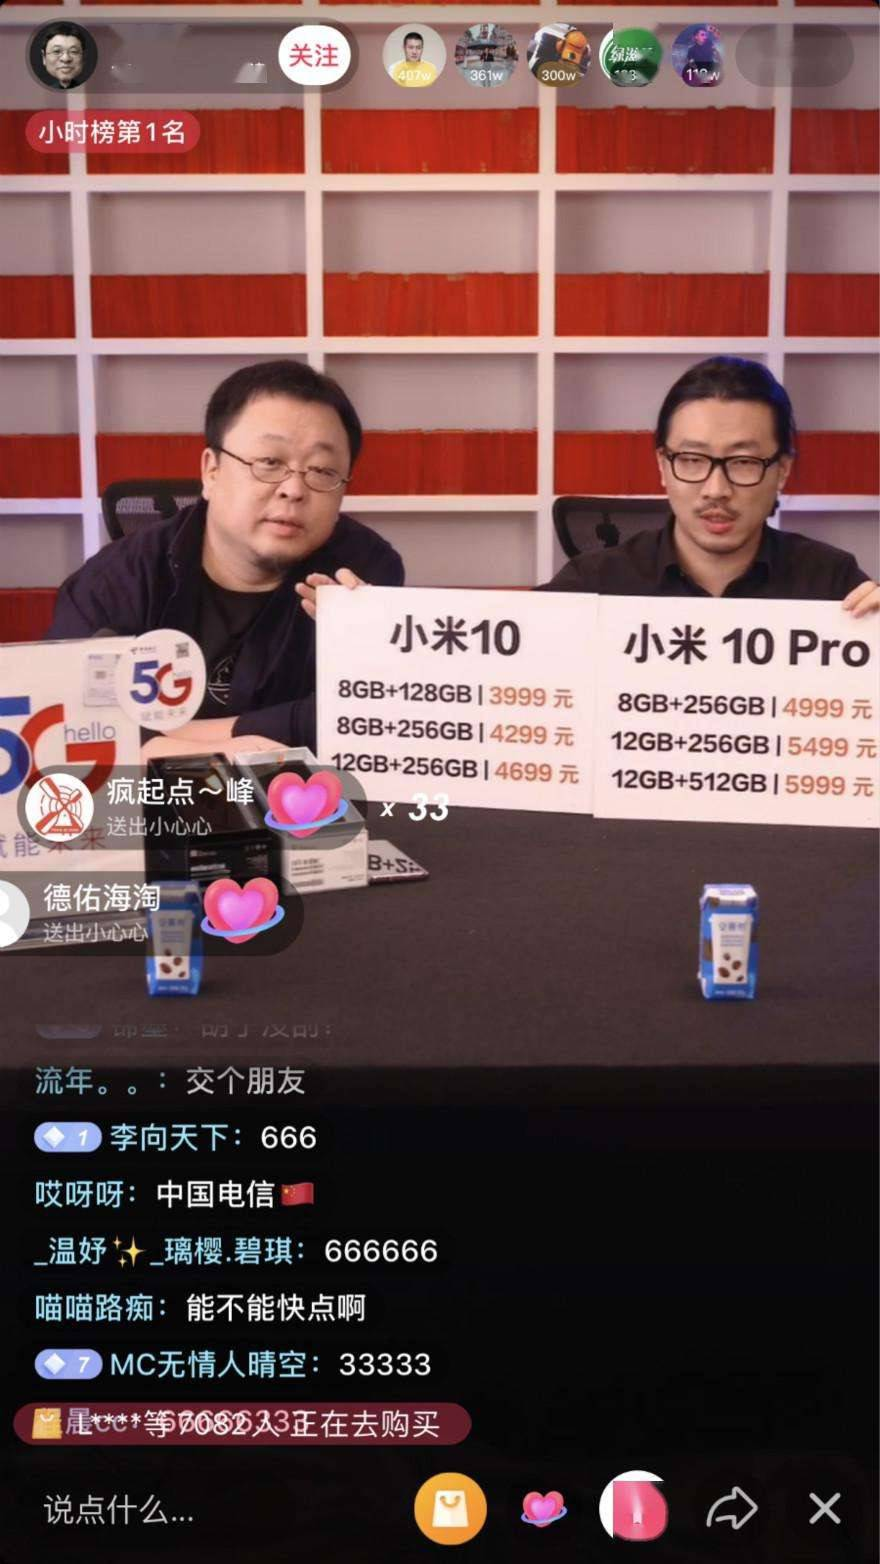 vvild vape CEO Luo Yonghao sold 110 million yuan groceries on TikTok in 3 hours